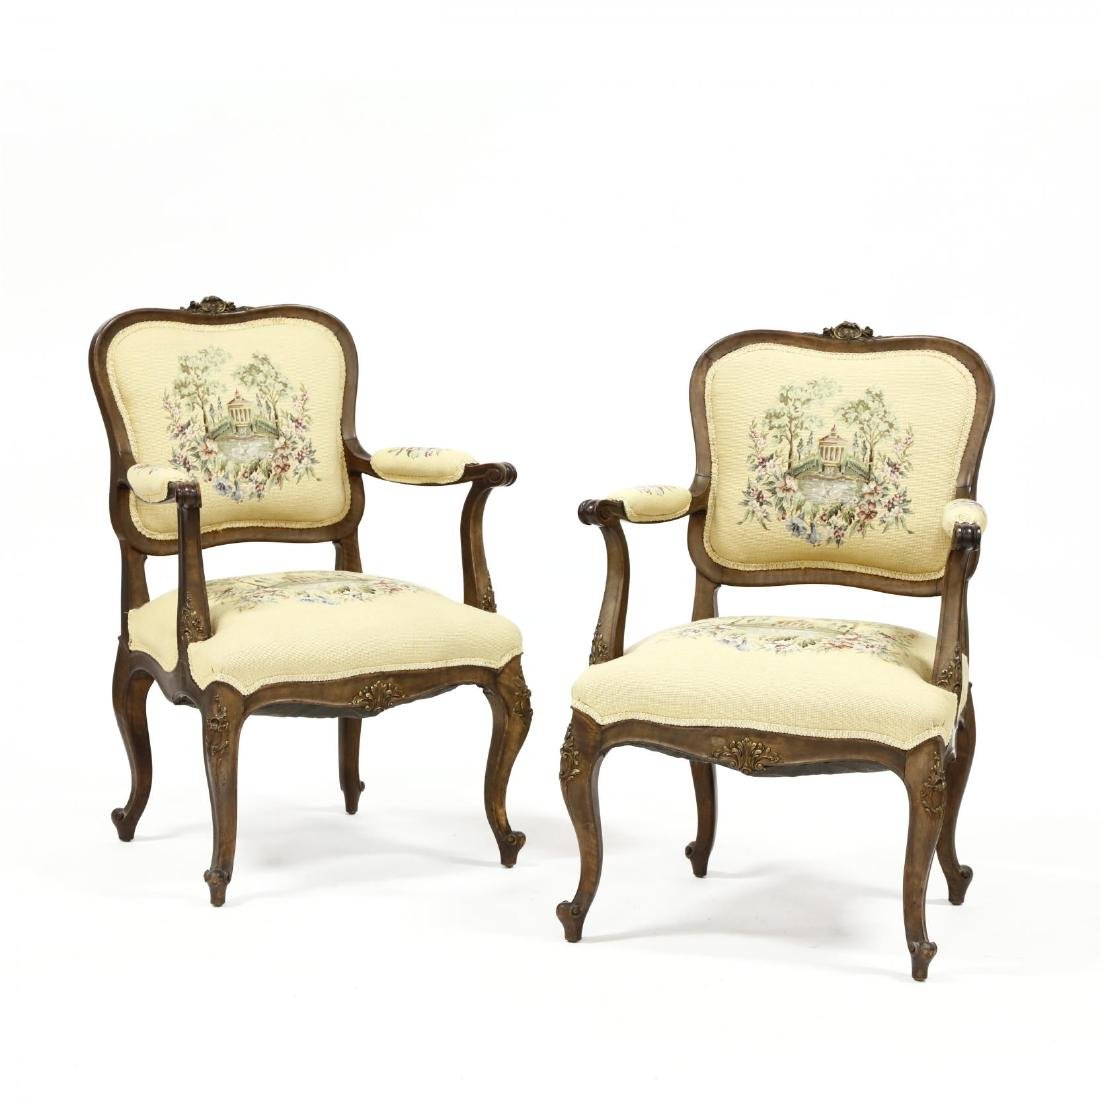 Pair of Louis XV Style Needlepoint Fauteuils